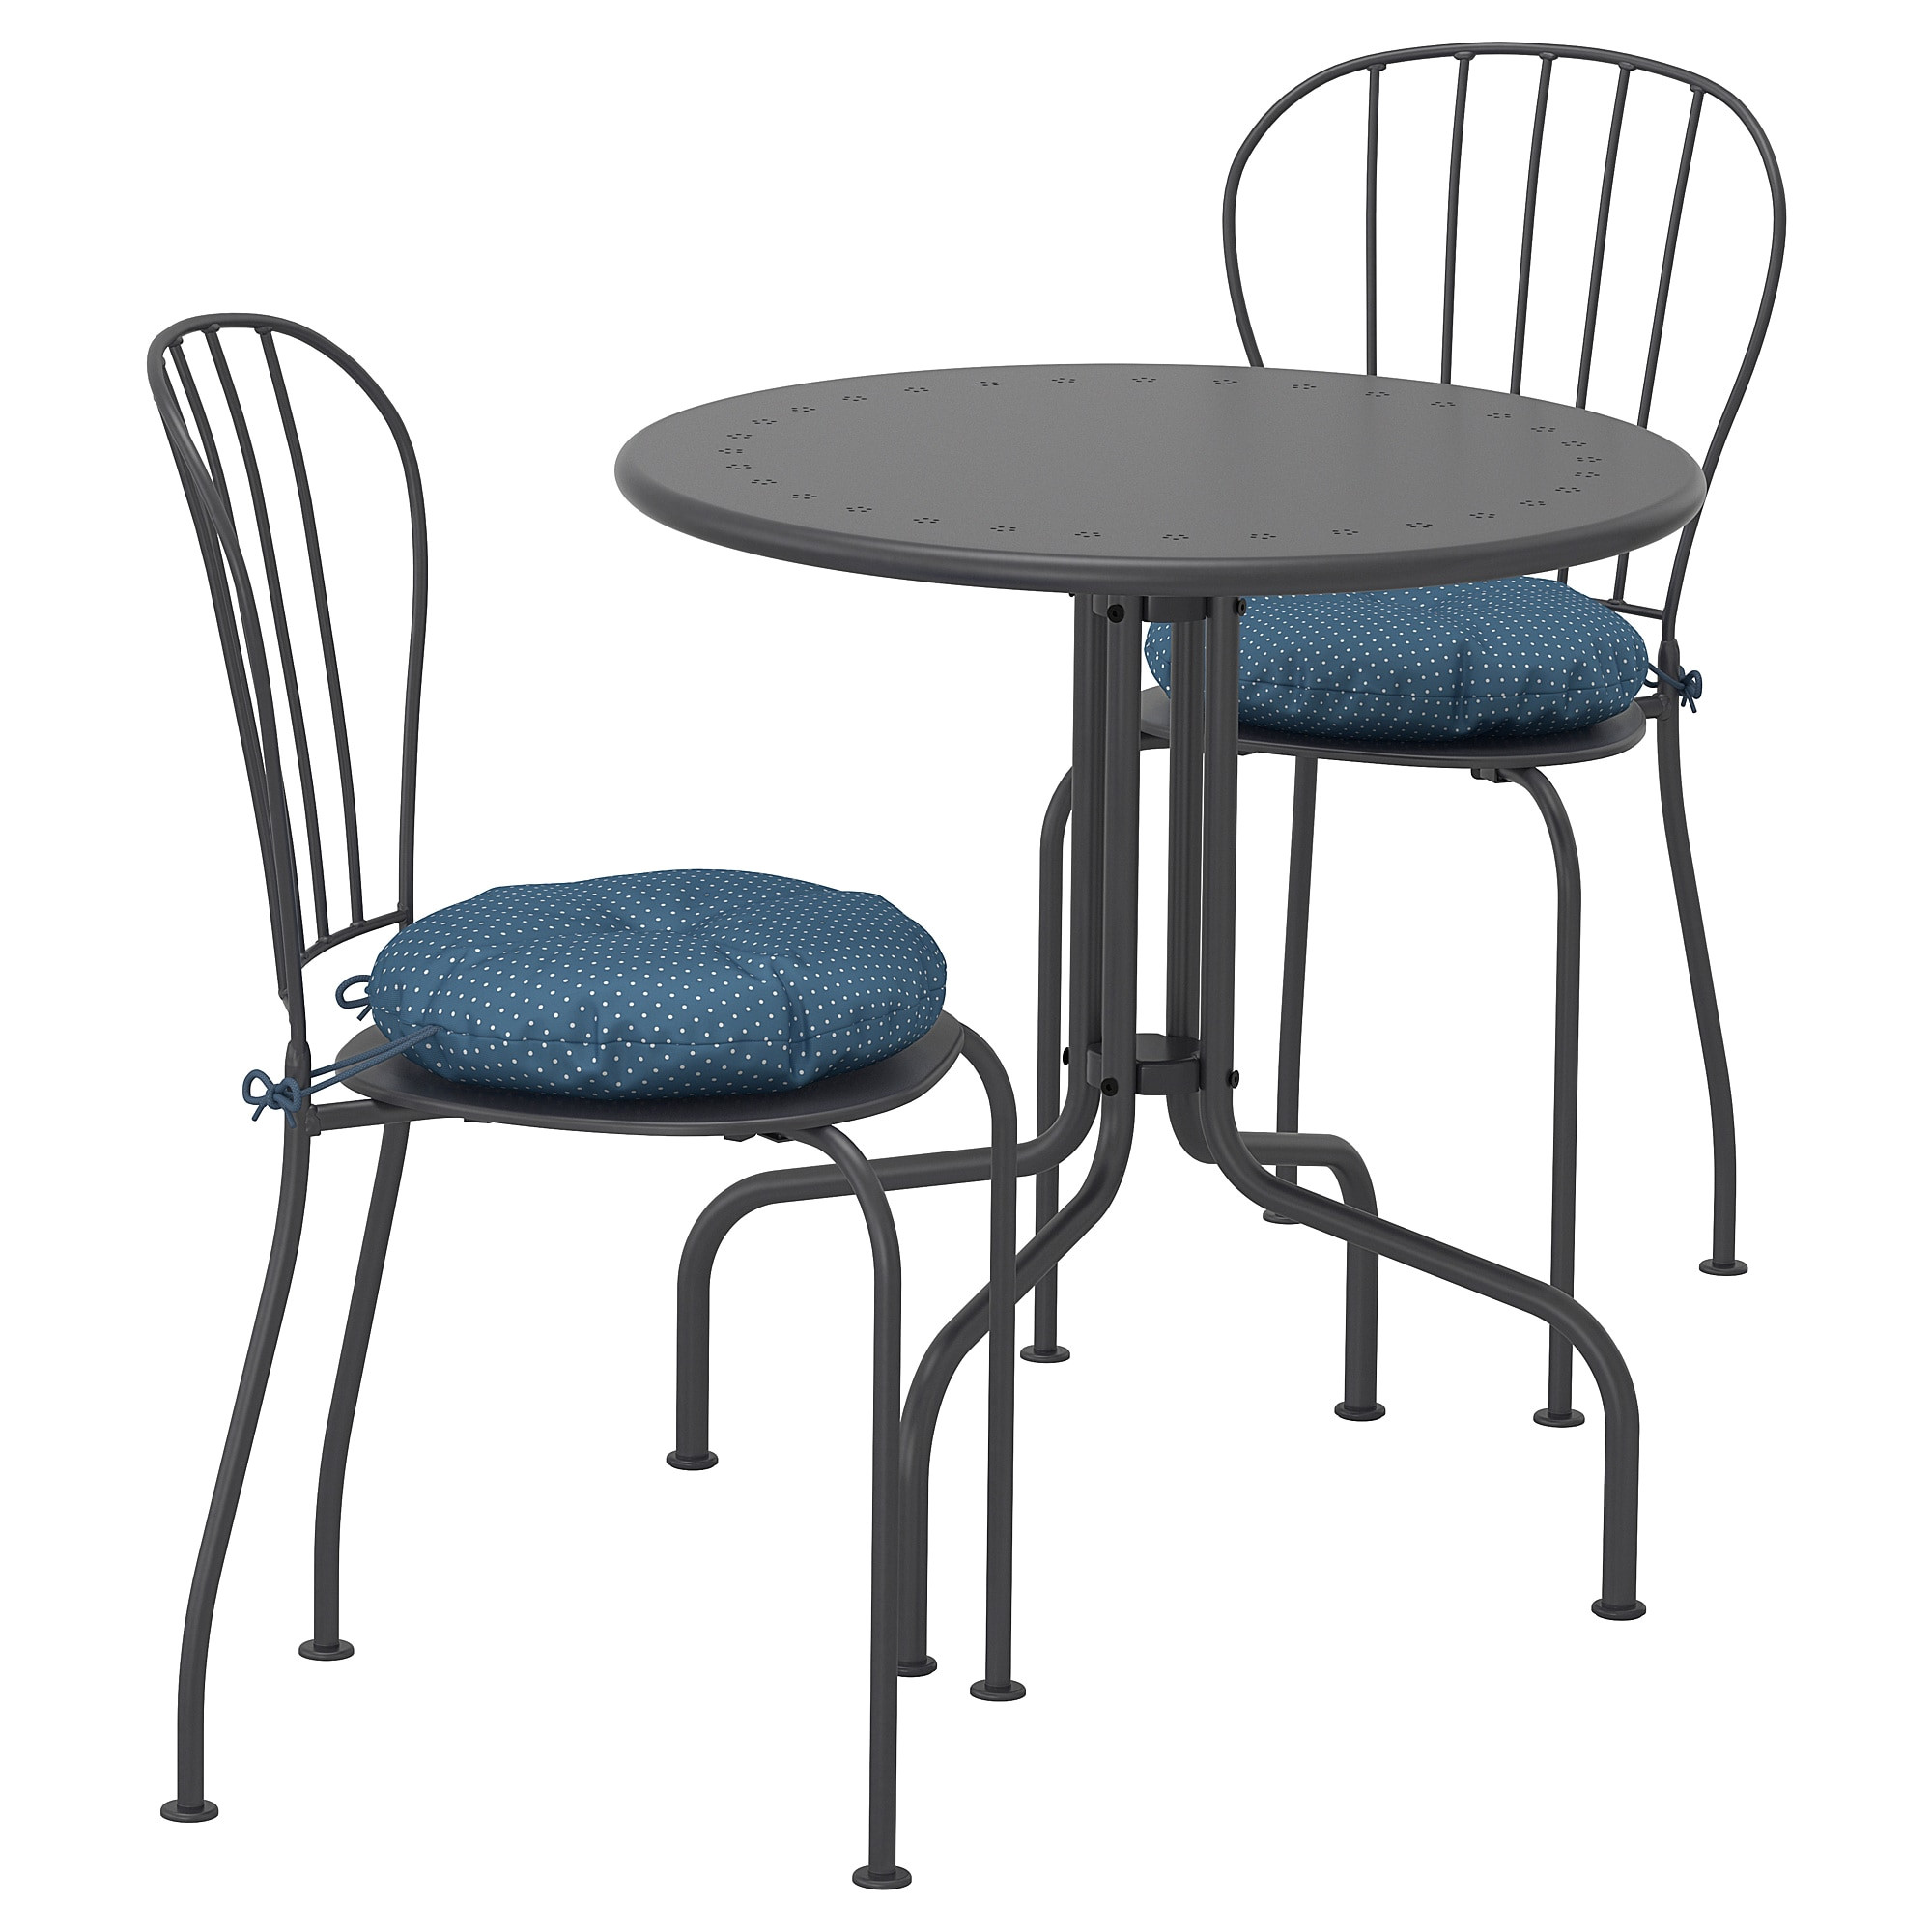 ikea la cka table 2 chairs outdoor the drain hole in the seat lets water